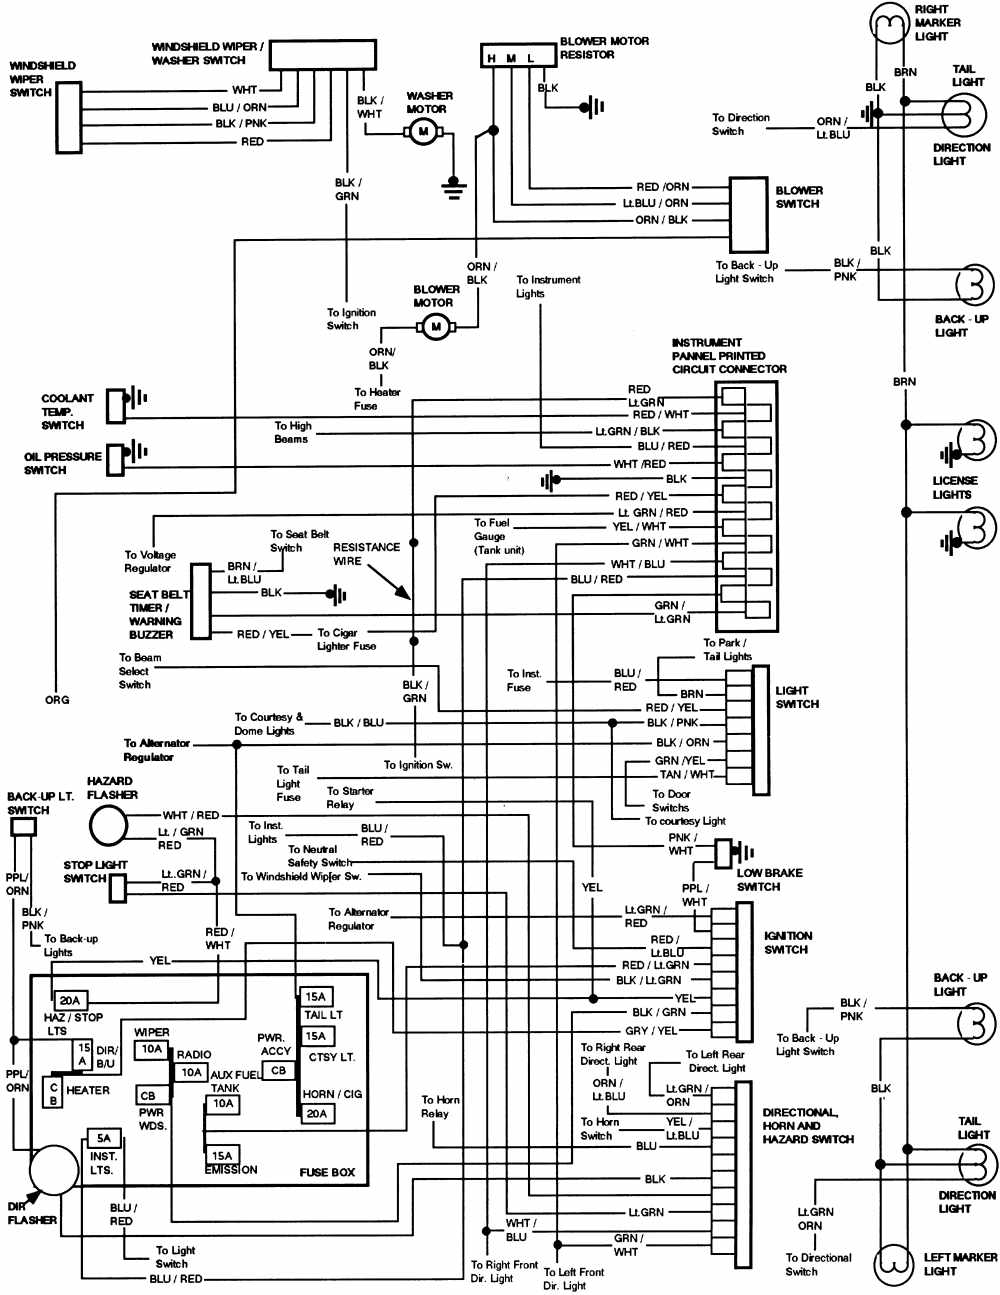 speaker wiring diagram for 05 silverado